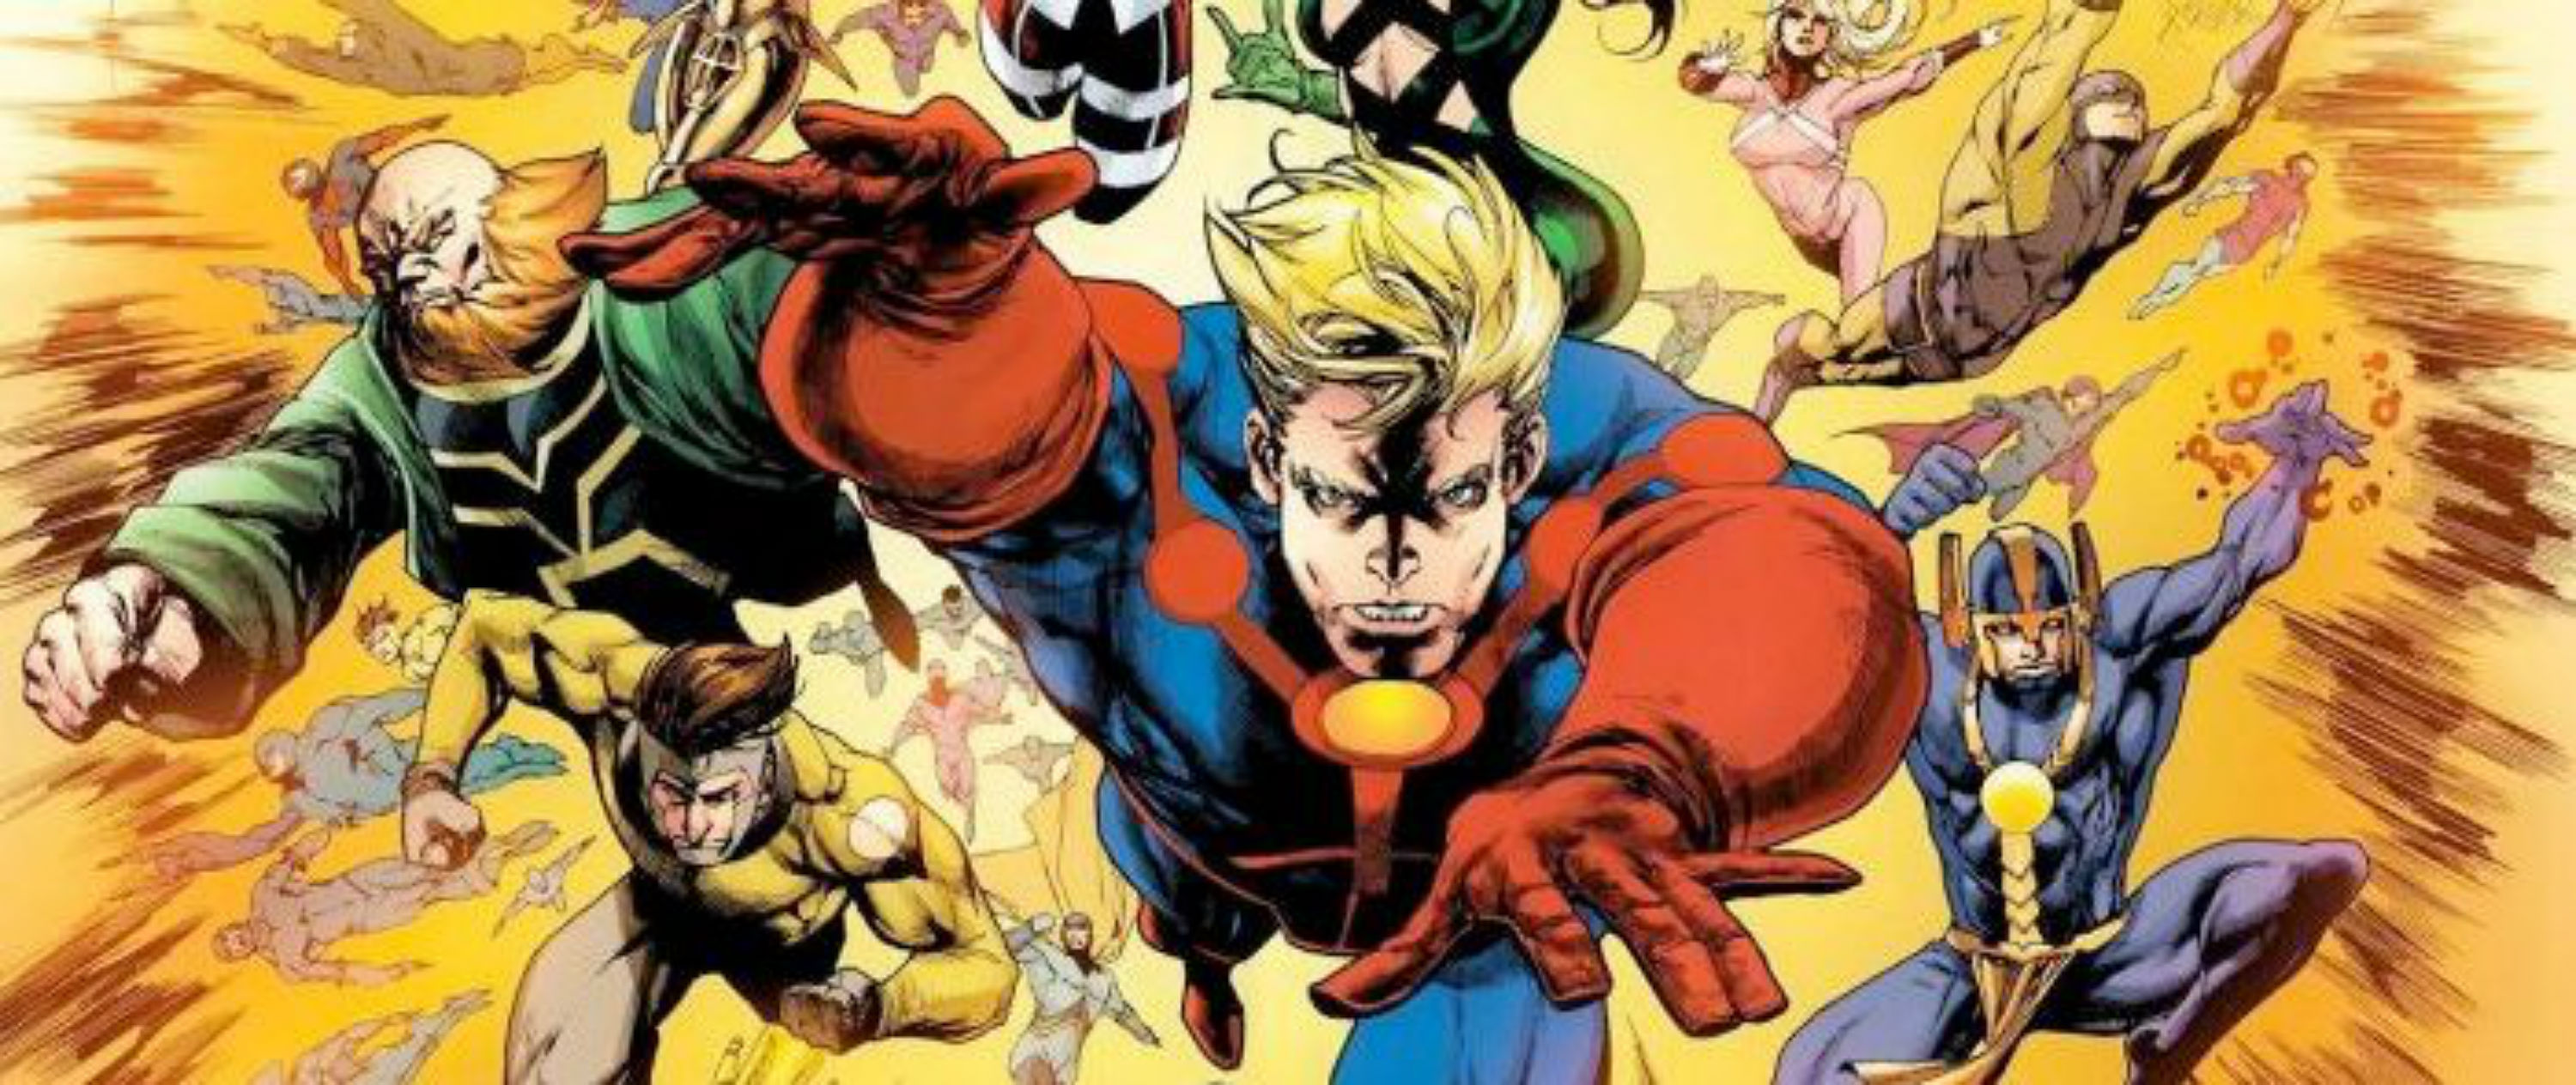 Marvel Studios is reportedly looking for an openly gay actor to appear in the lead role in upcoming 2020 film The Eternals